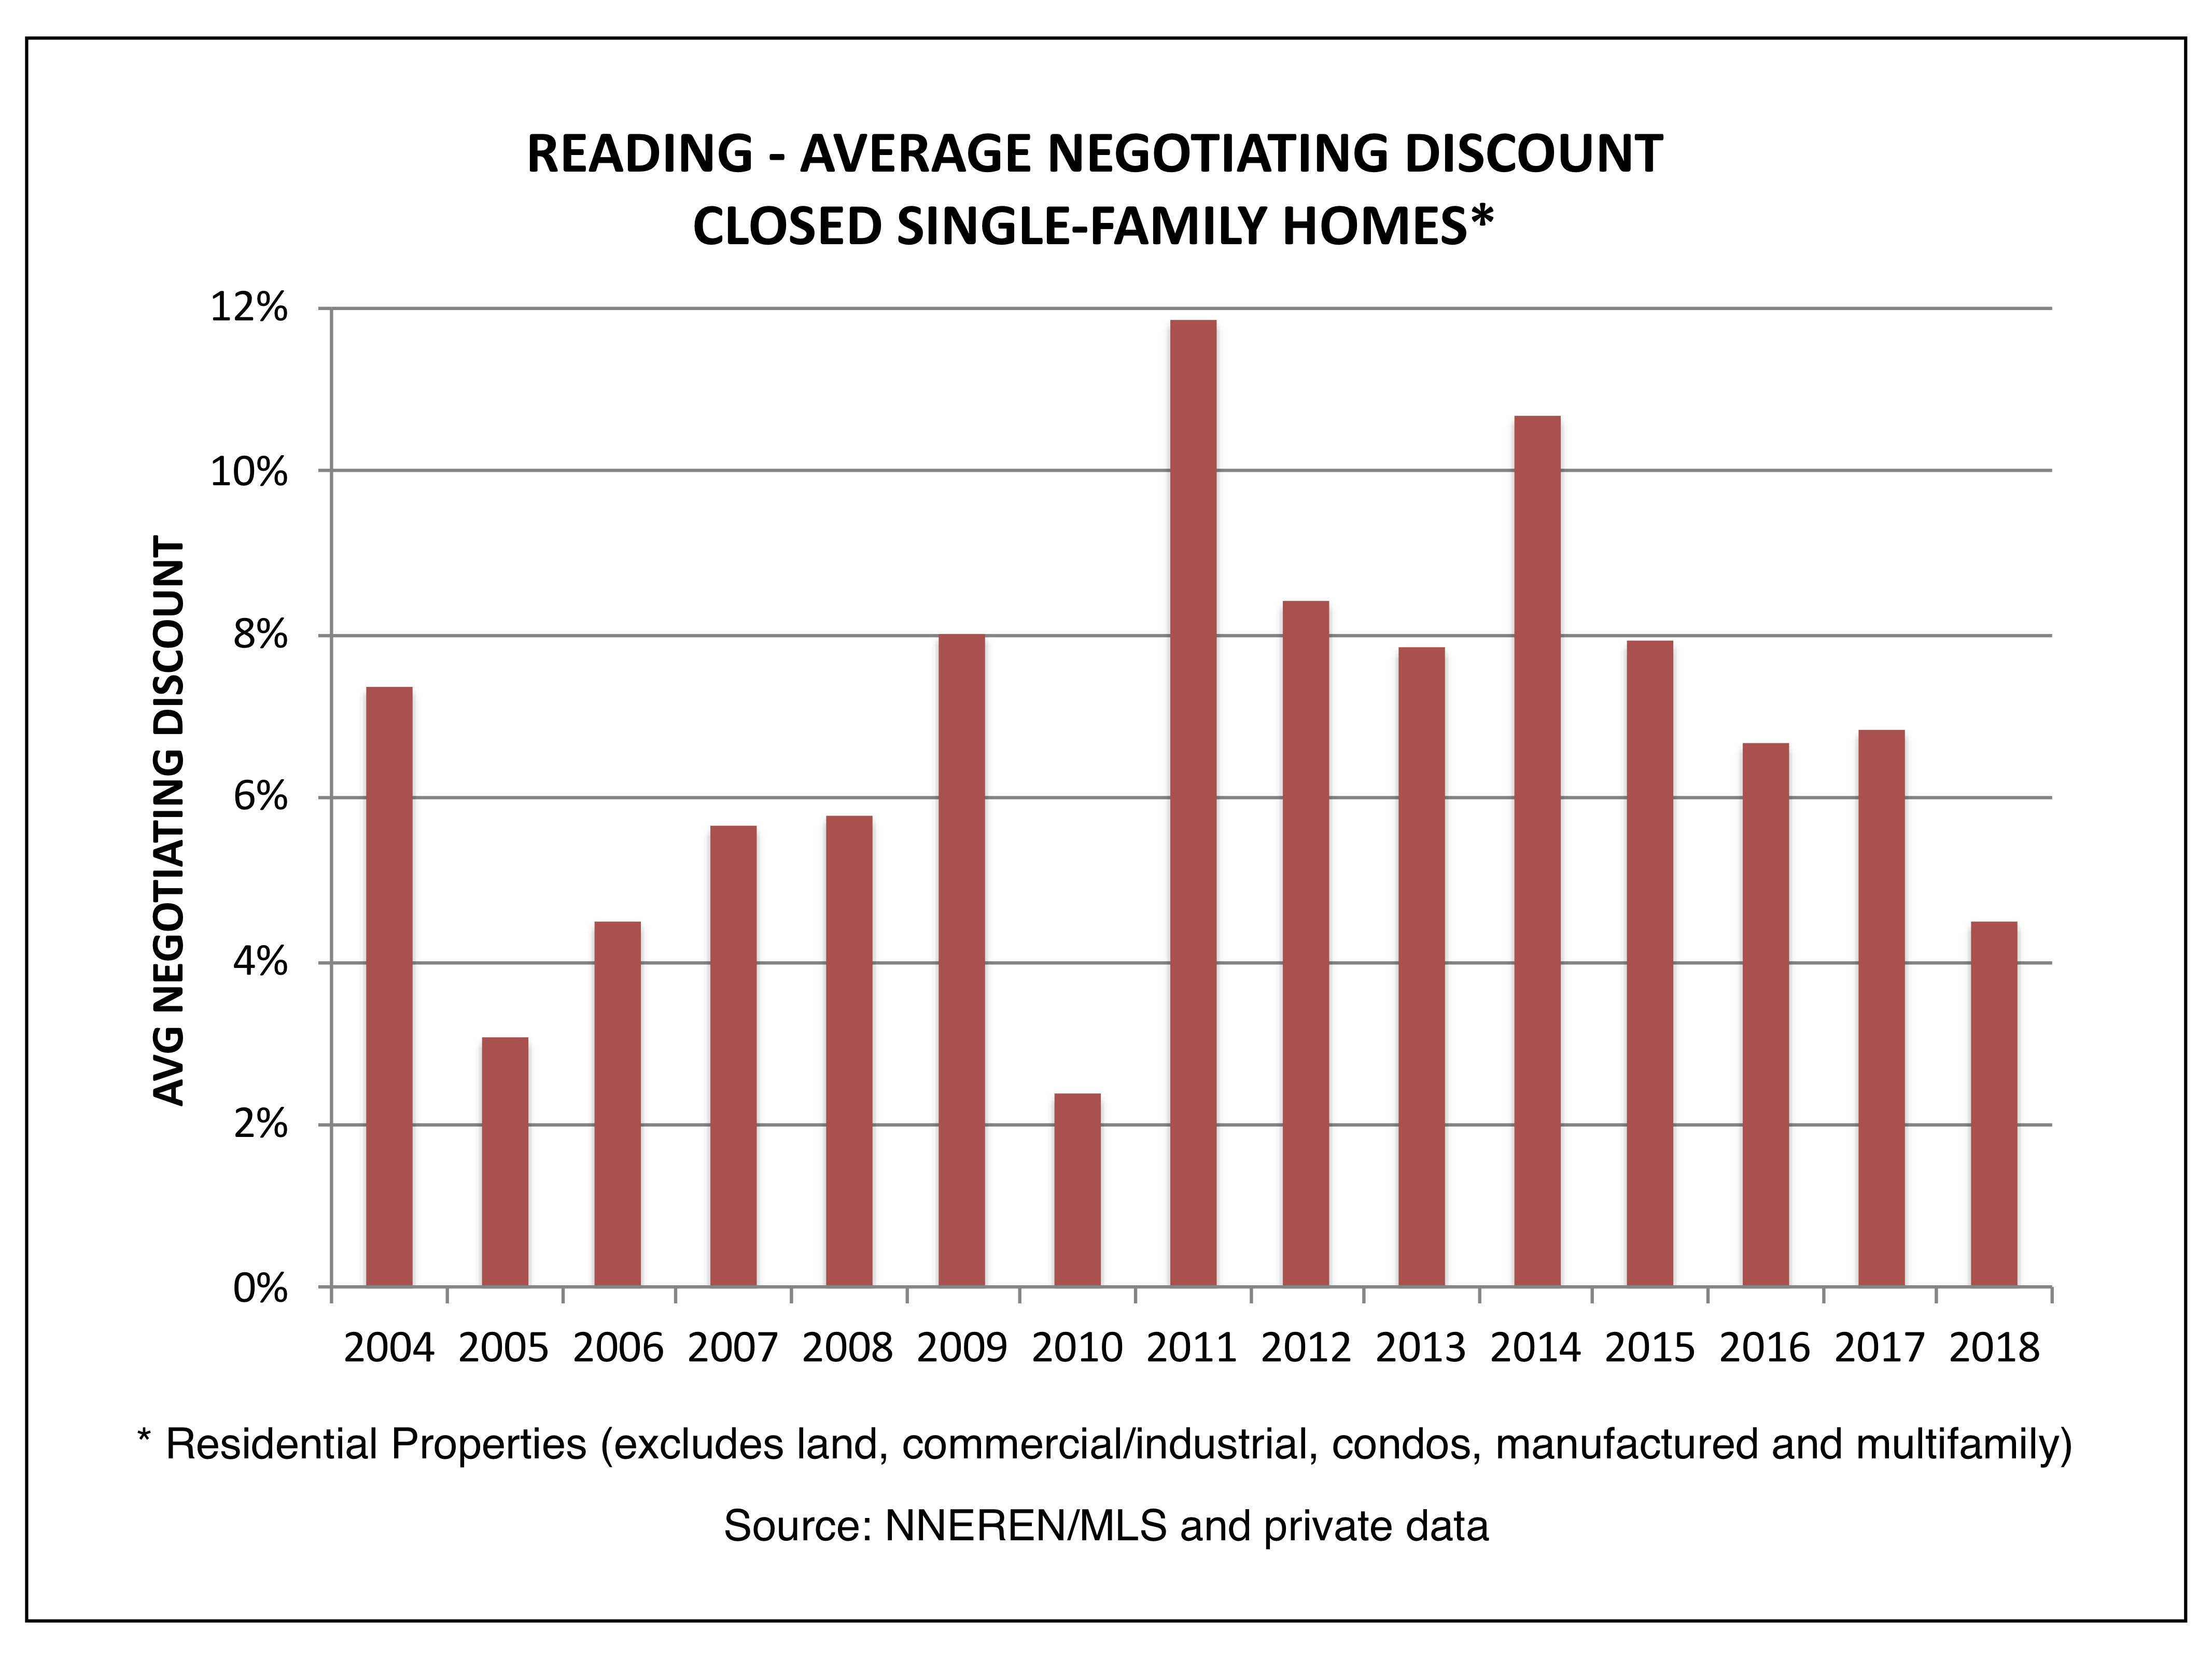 Reading - Average Negotiating Discount, Closed Homes